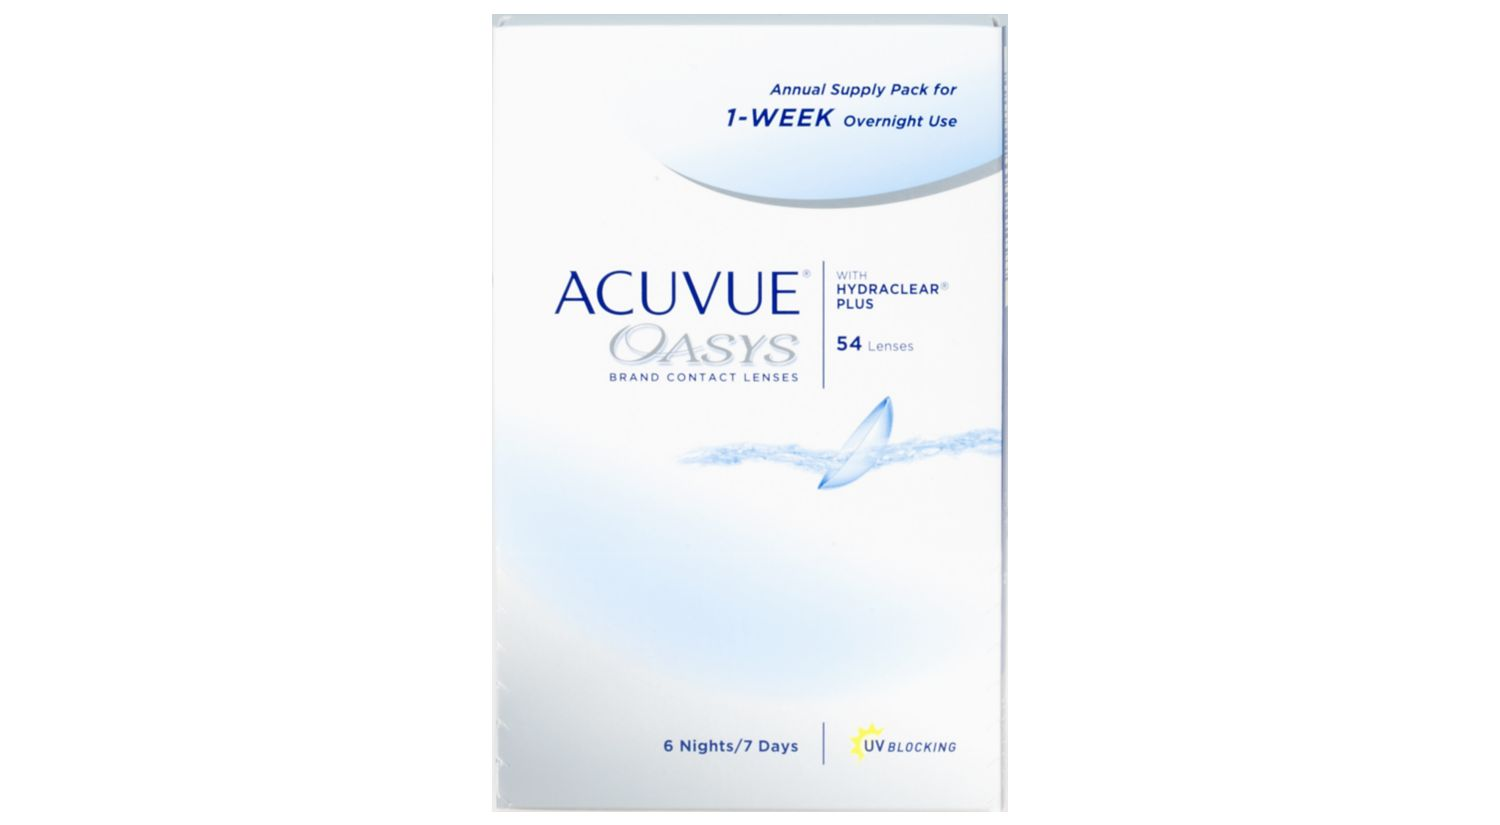 ACUVUE® OASYS® Annual Pack for Overnight Use